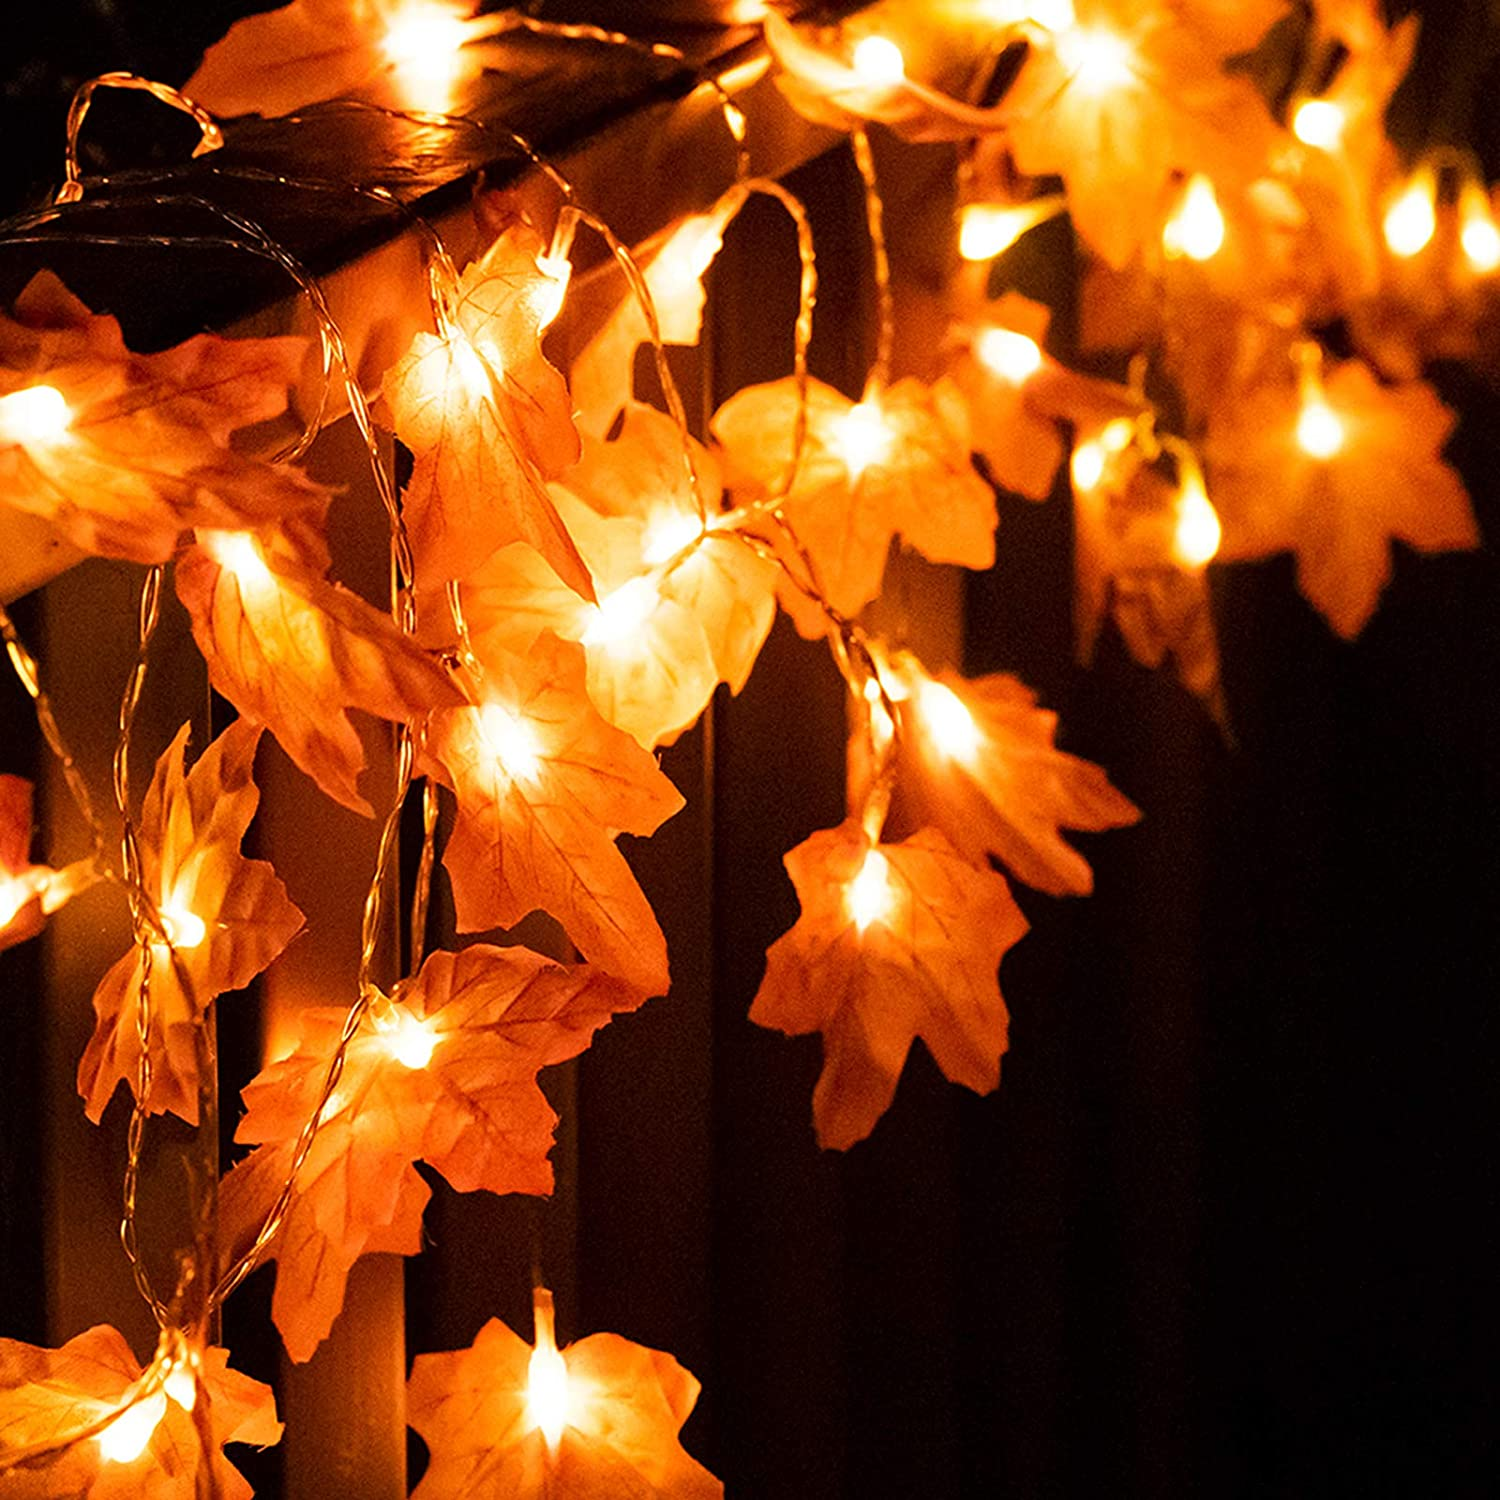 MEULOT Thanksgiving Decorations Lights, Fall Decor Maple Leaf Lights, 20 LED Halloween String Lights, Battery Operated Fall Garland Fairy Lights for Home Wedding Indoor Outdoor Holiday (D)